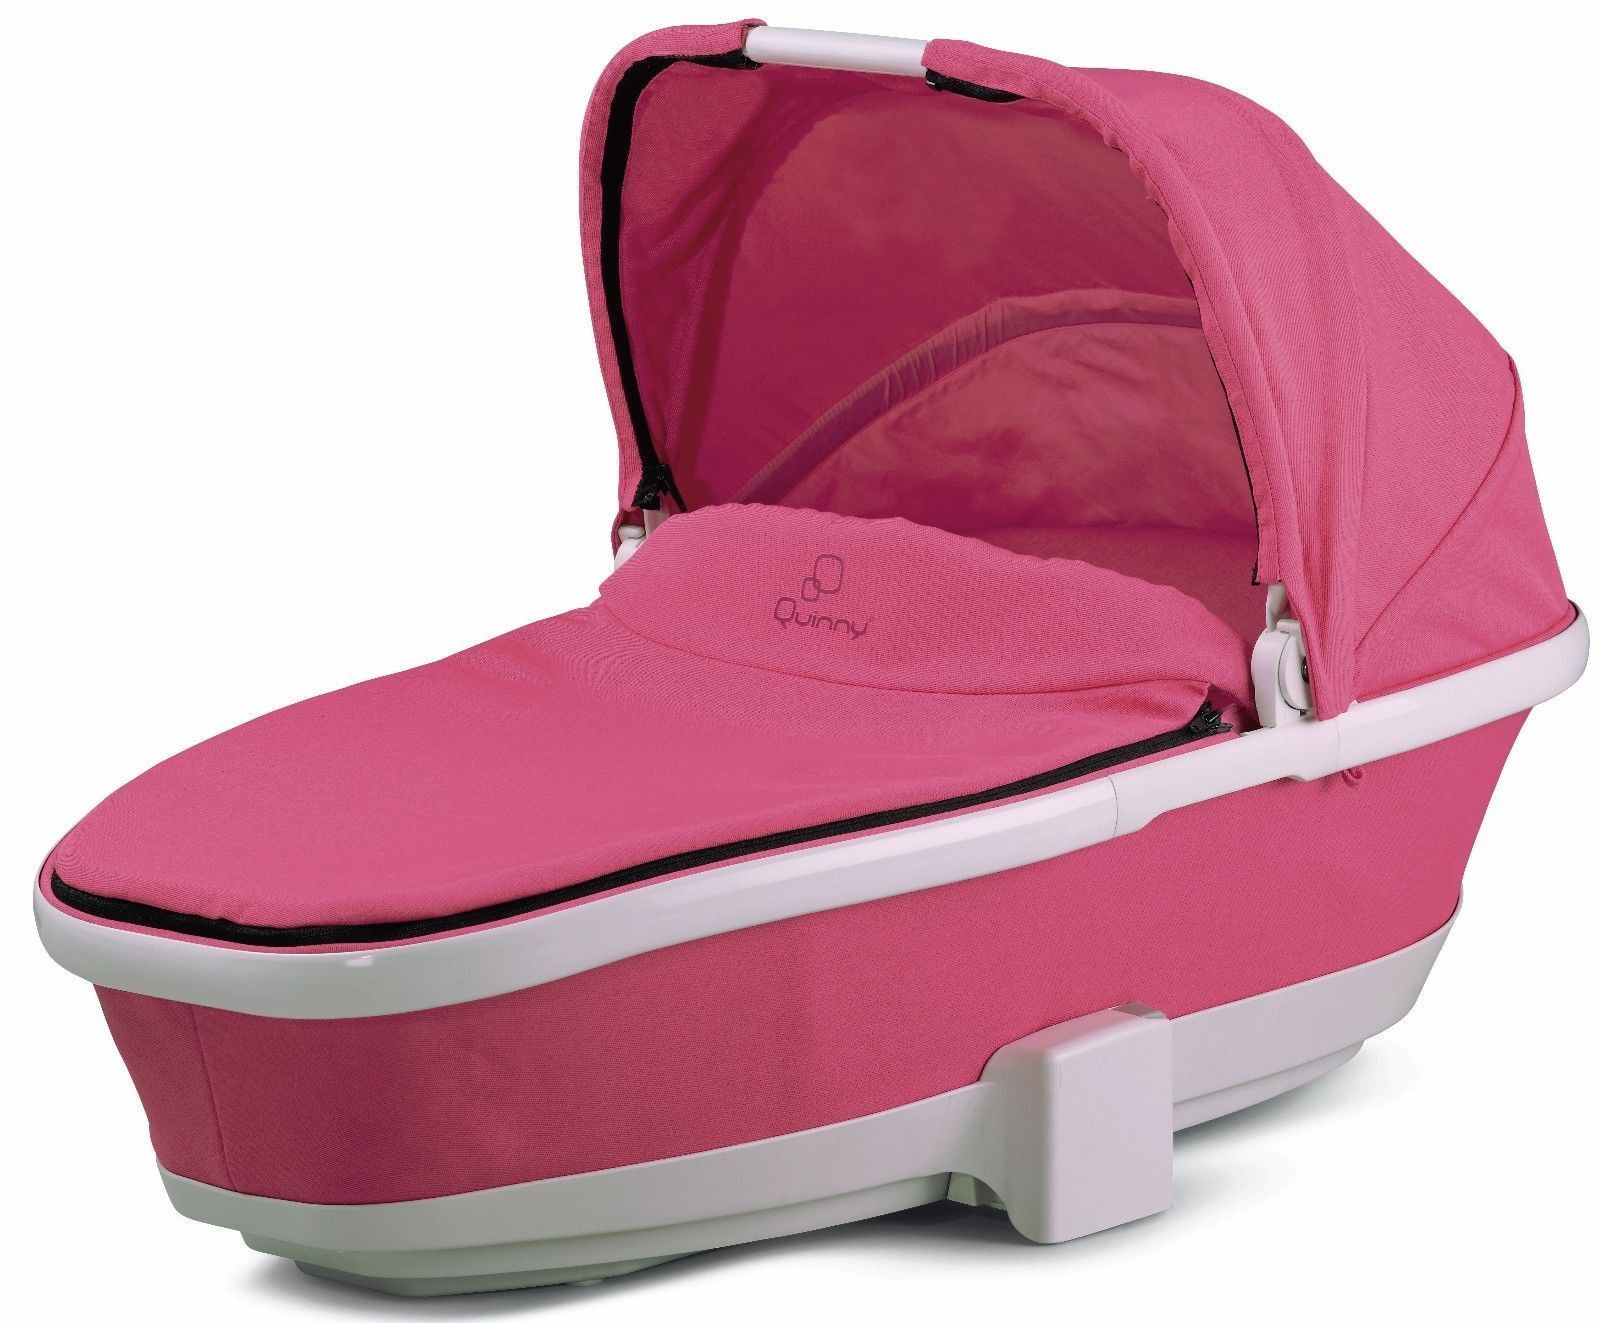 ee47290f76a Quinny Tukk Foldable Bassinet Baby Carrycot Carrier for Moodd   Buzz  Stroller-Pink Precious